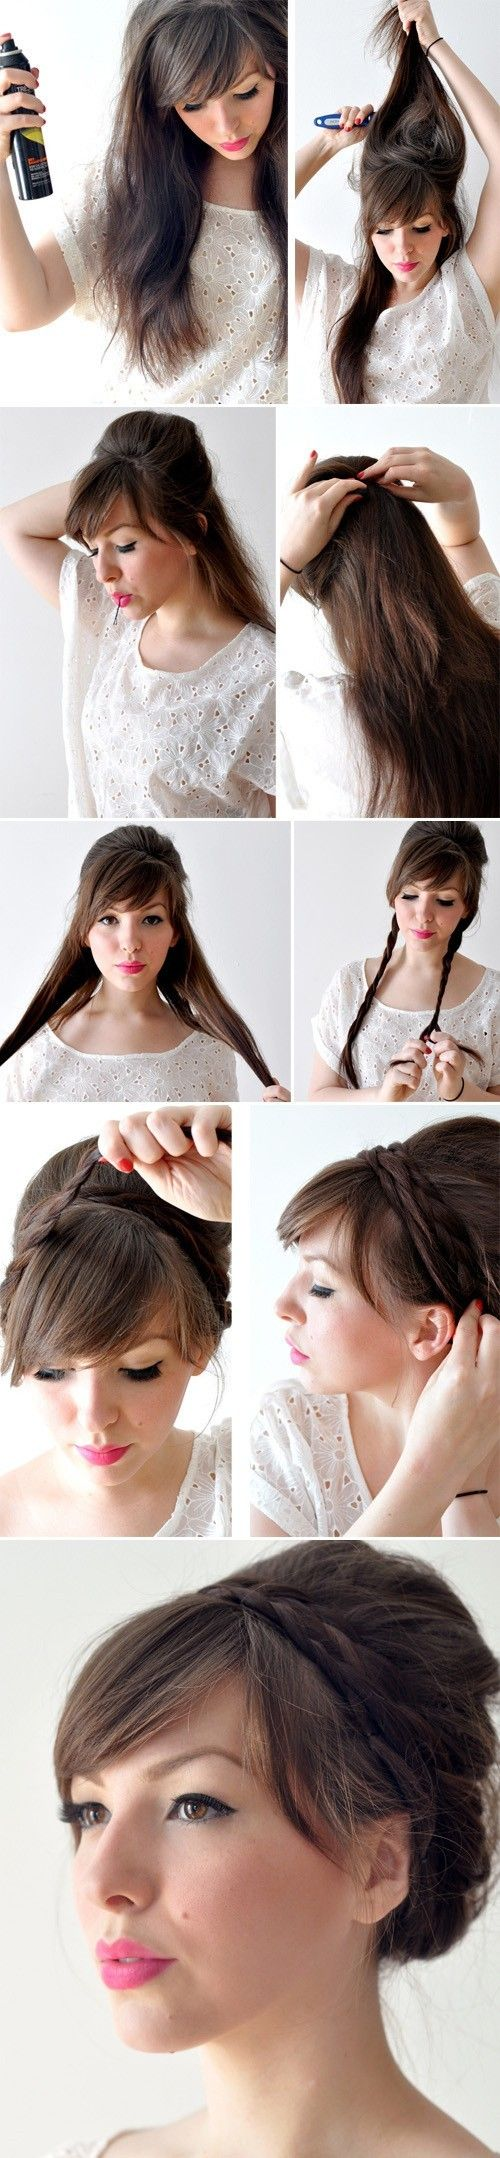 Ugh I wish my hair was long enough to rock this style Angie or Sandra you both could pull this trendy hair style off!                                                                                                                                                     More